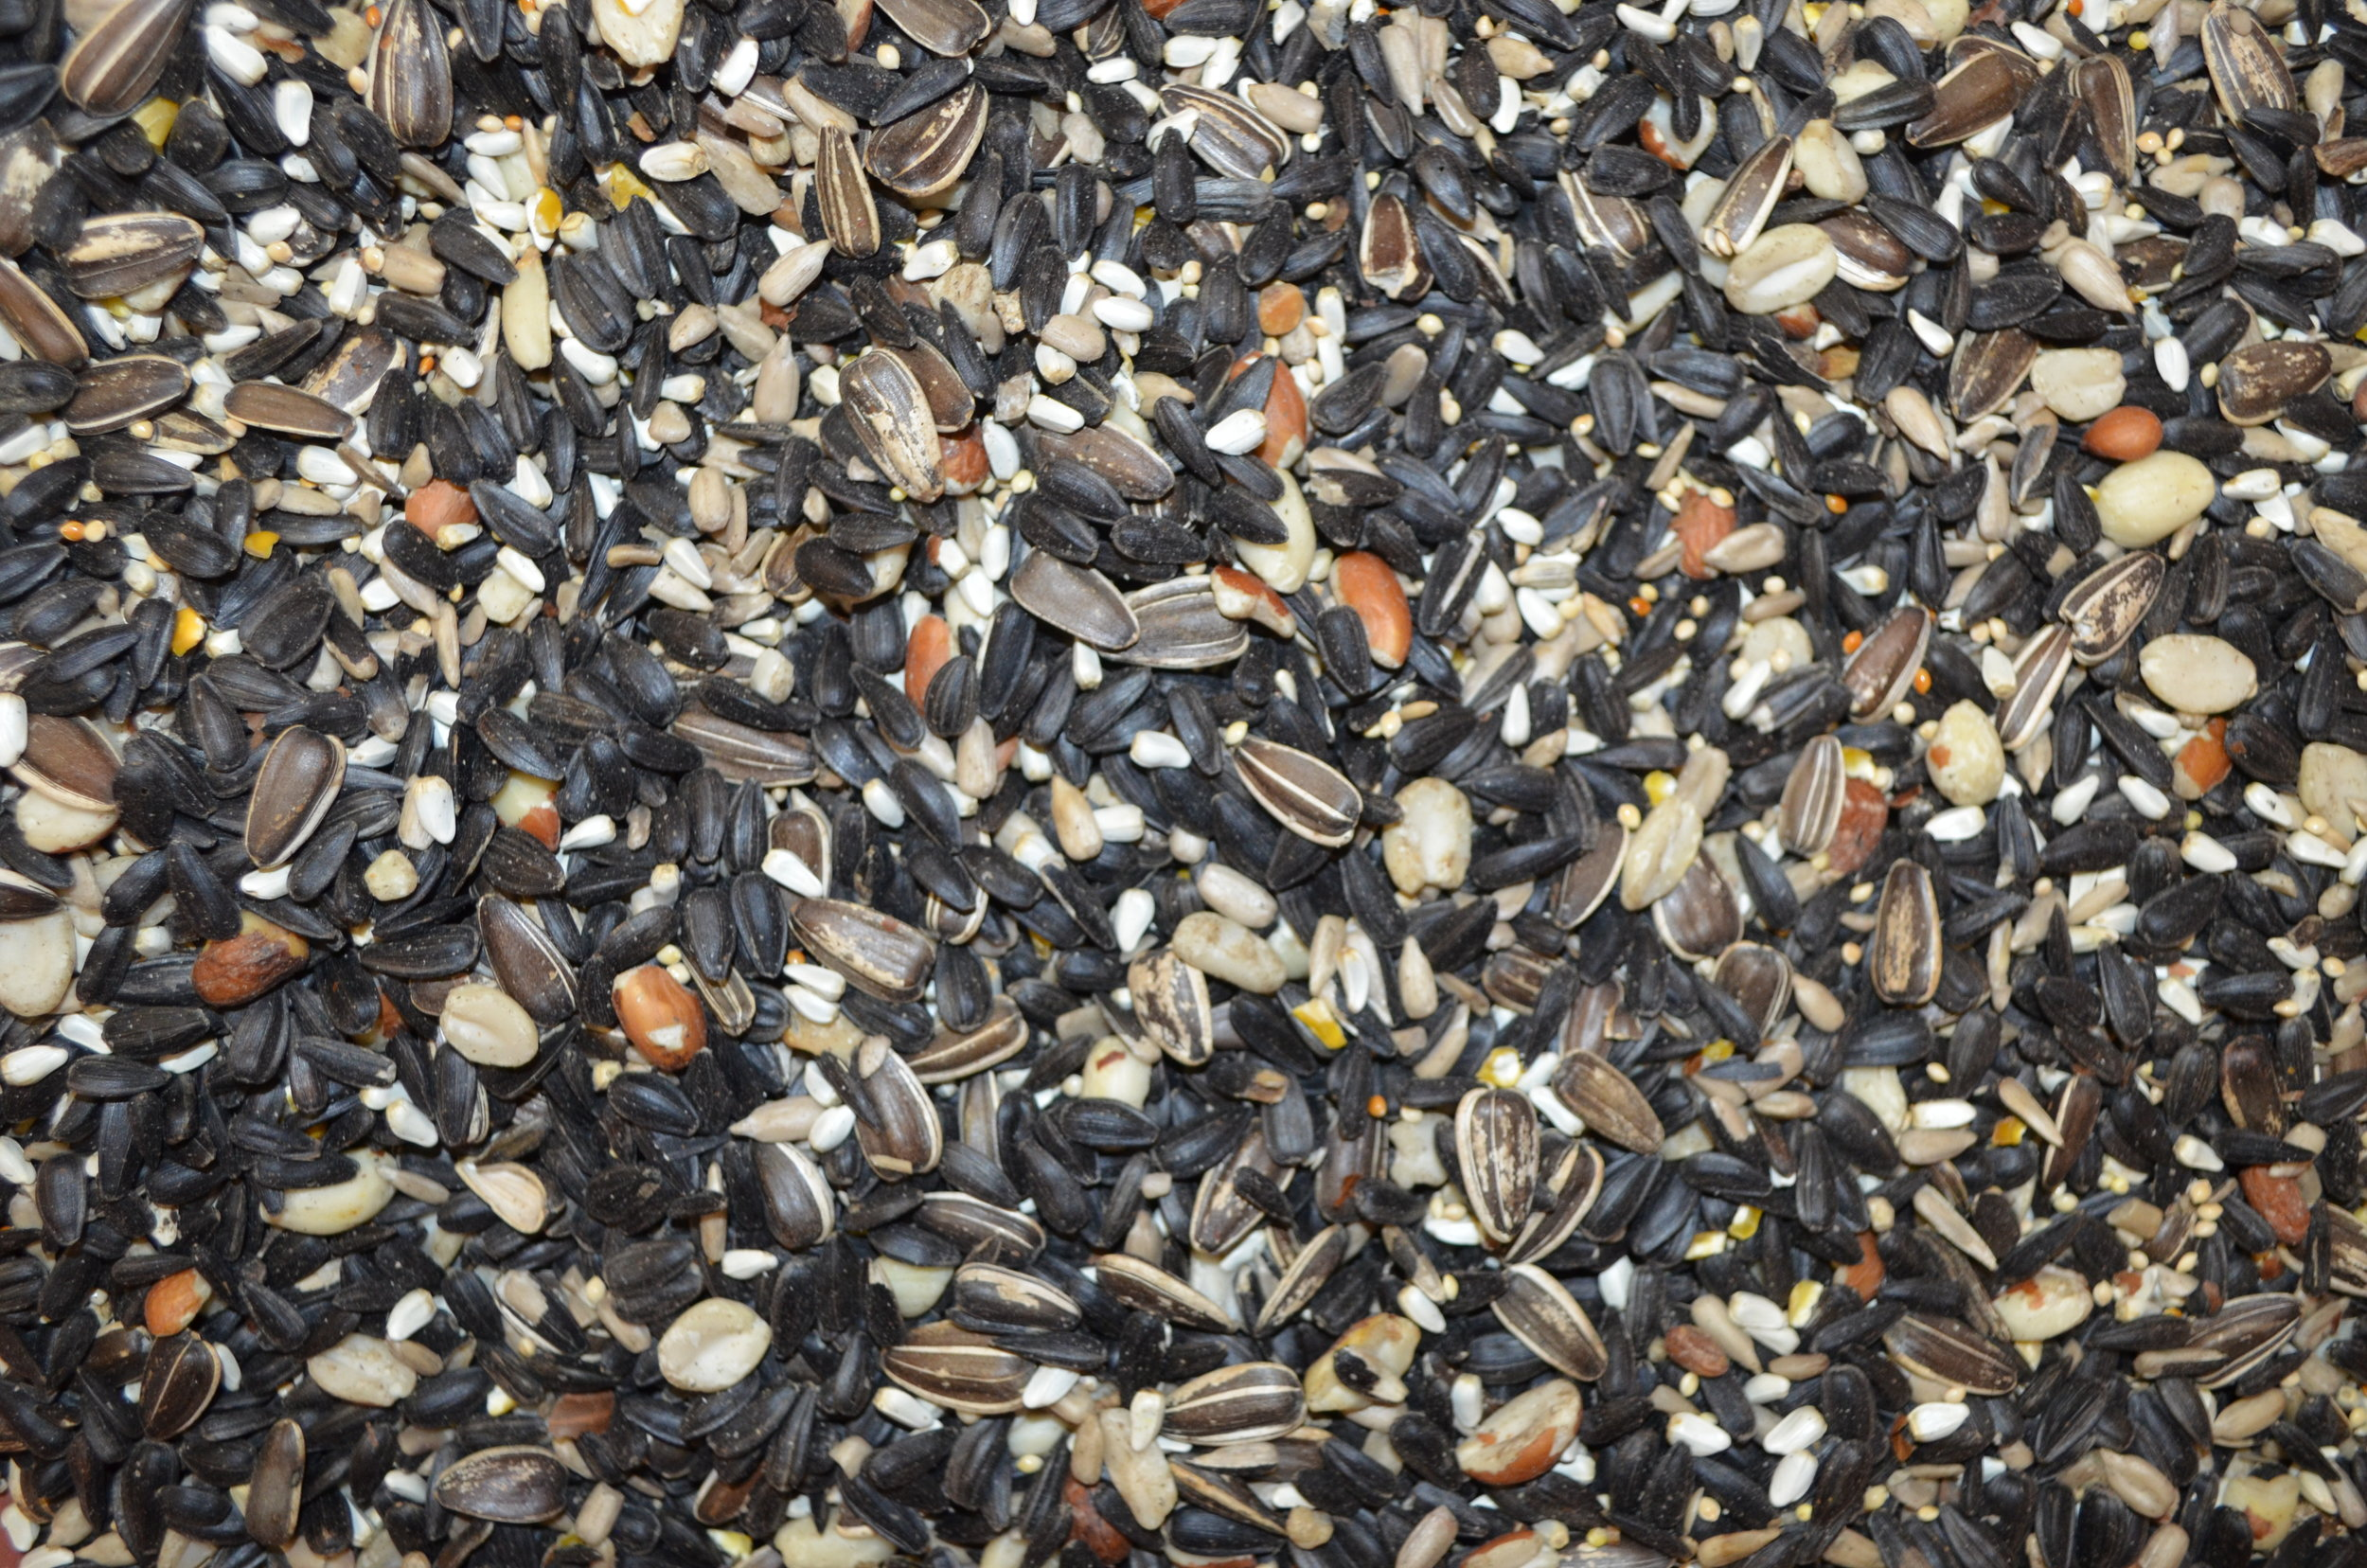 Deluxe Cardinal  Sunflower Seeds, Peanut Hearts, Hulled Sunflowers, Safflower  ATTRACTS CARDINALS, JAYS, FINCHES, & CHICKADEES